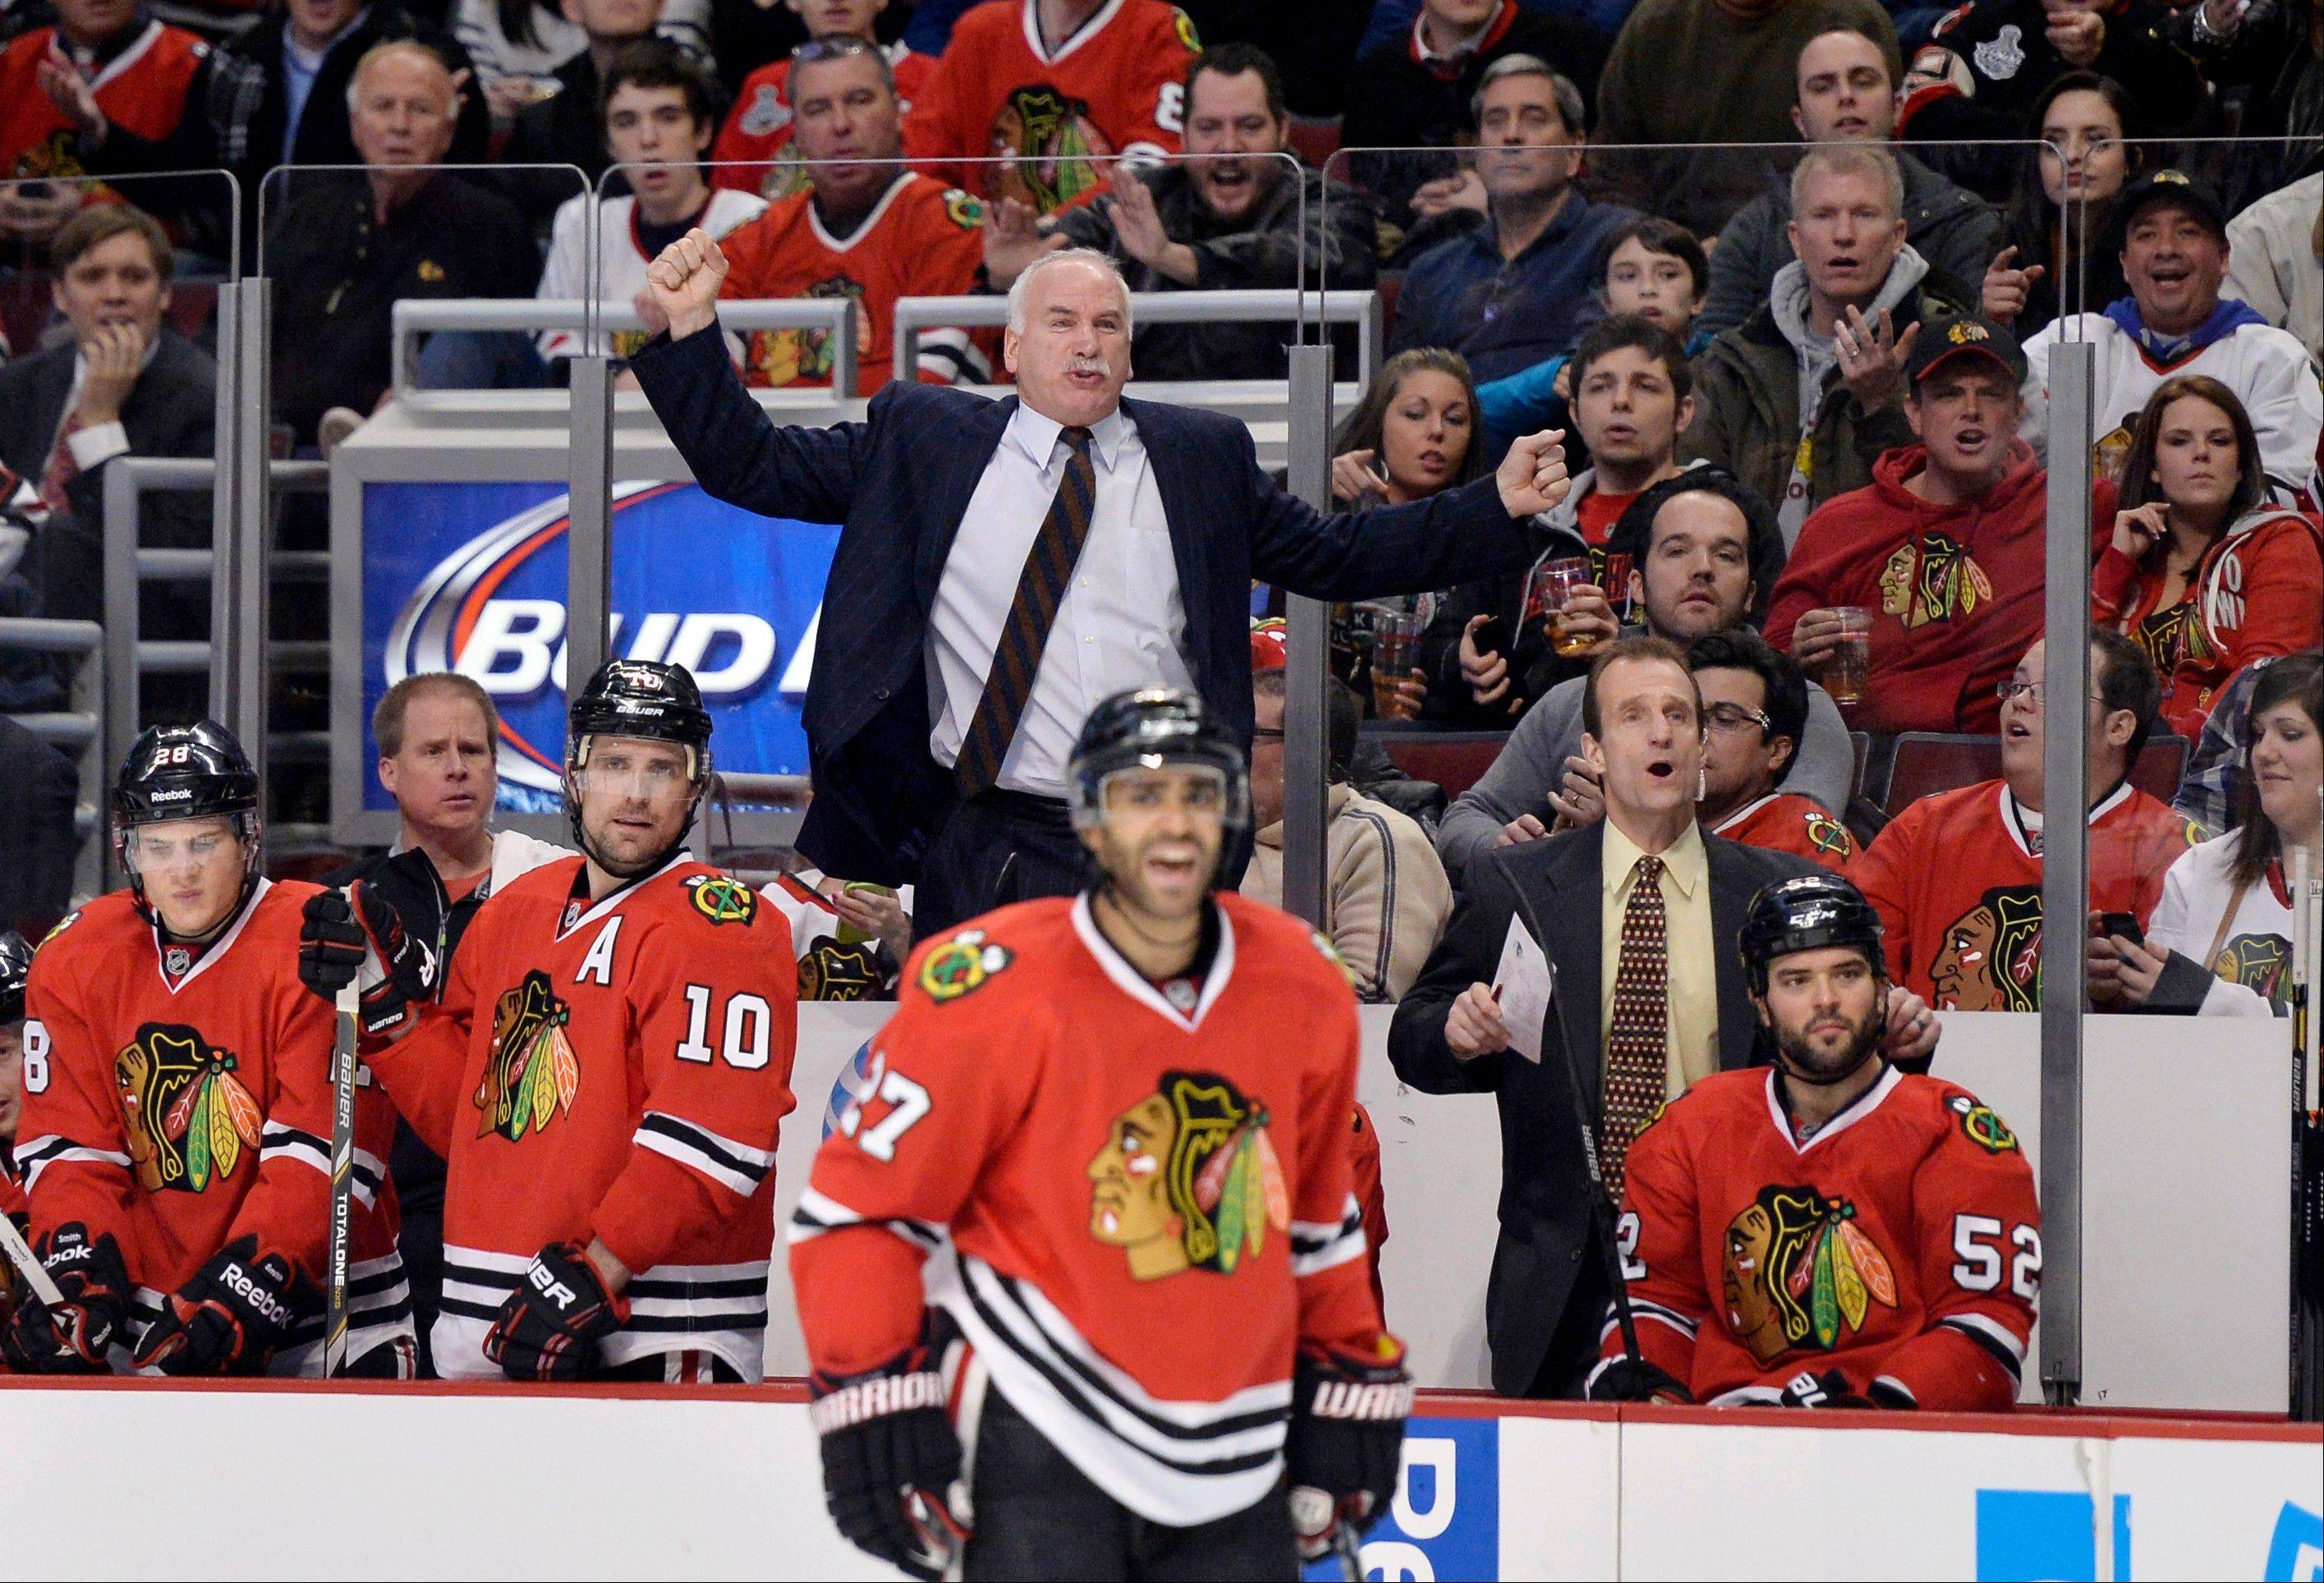 Hawks coach Joel Quenneville, center, raises his arms after the referee stopped play on a delayed penalty during the second period against the Ducks on Friday night at the United Center.